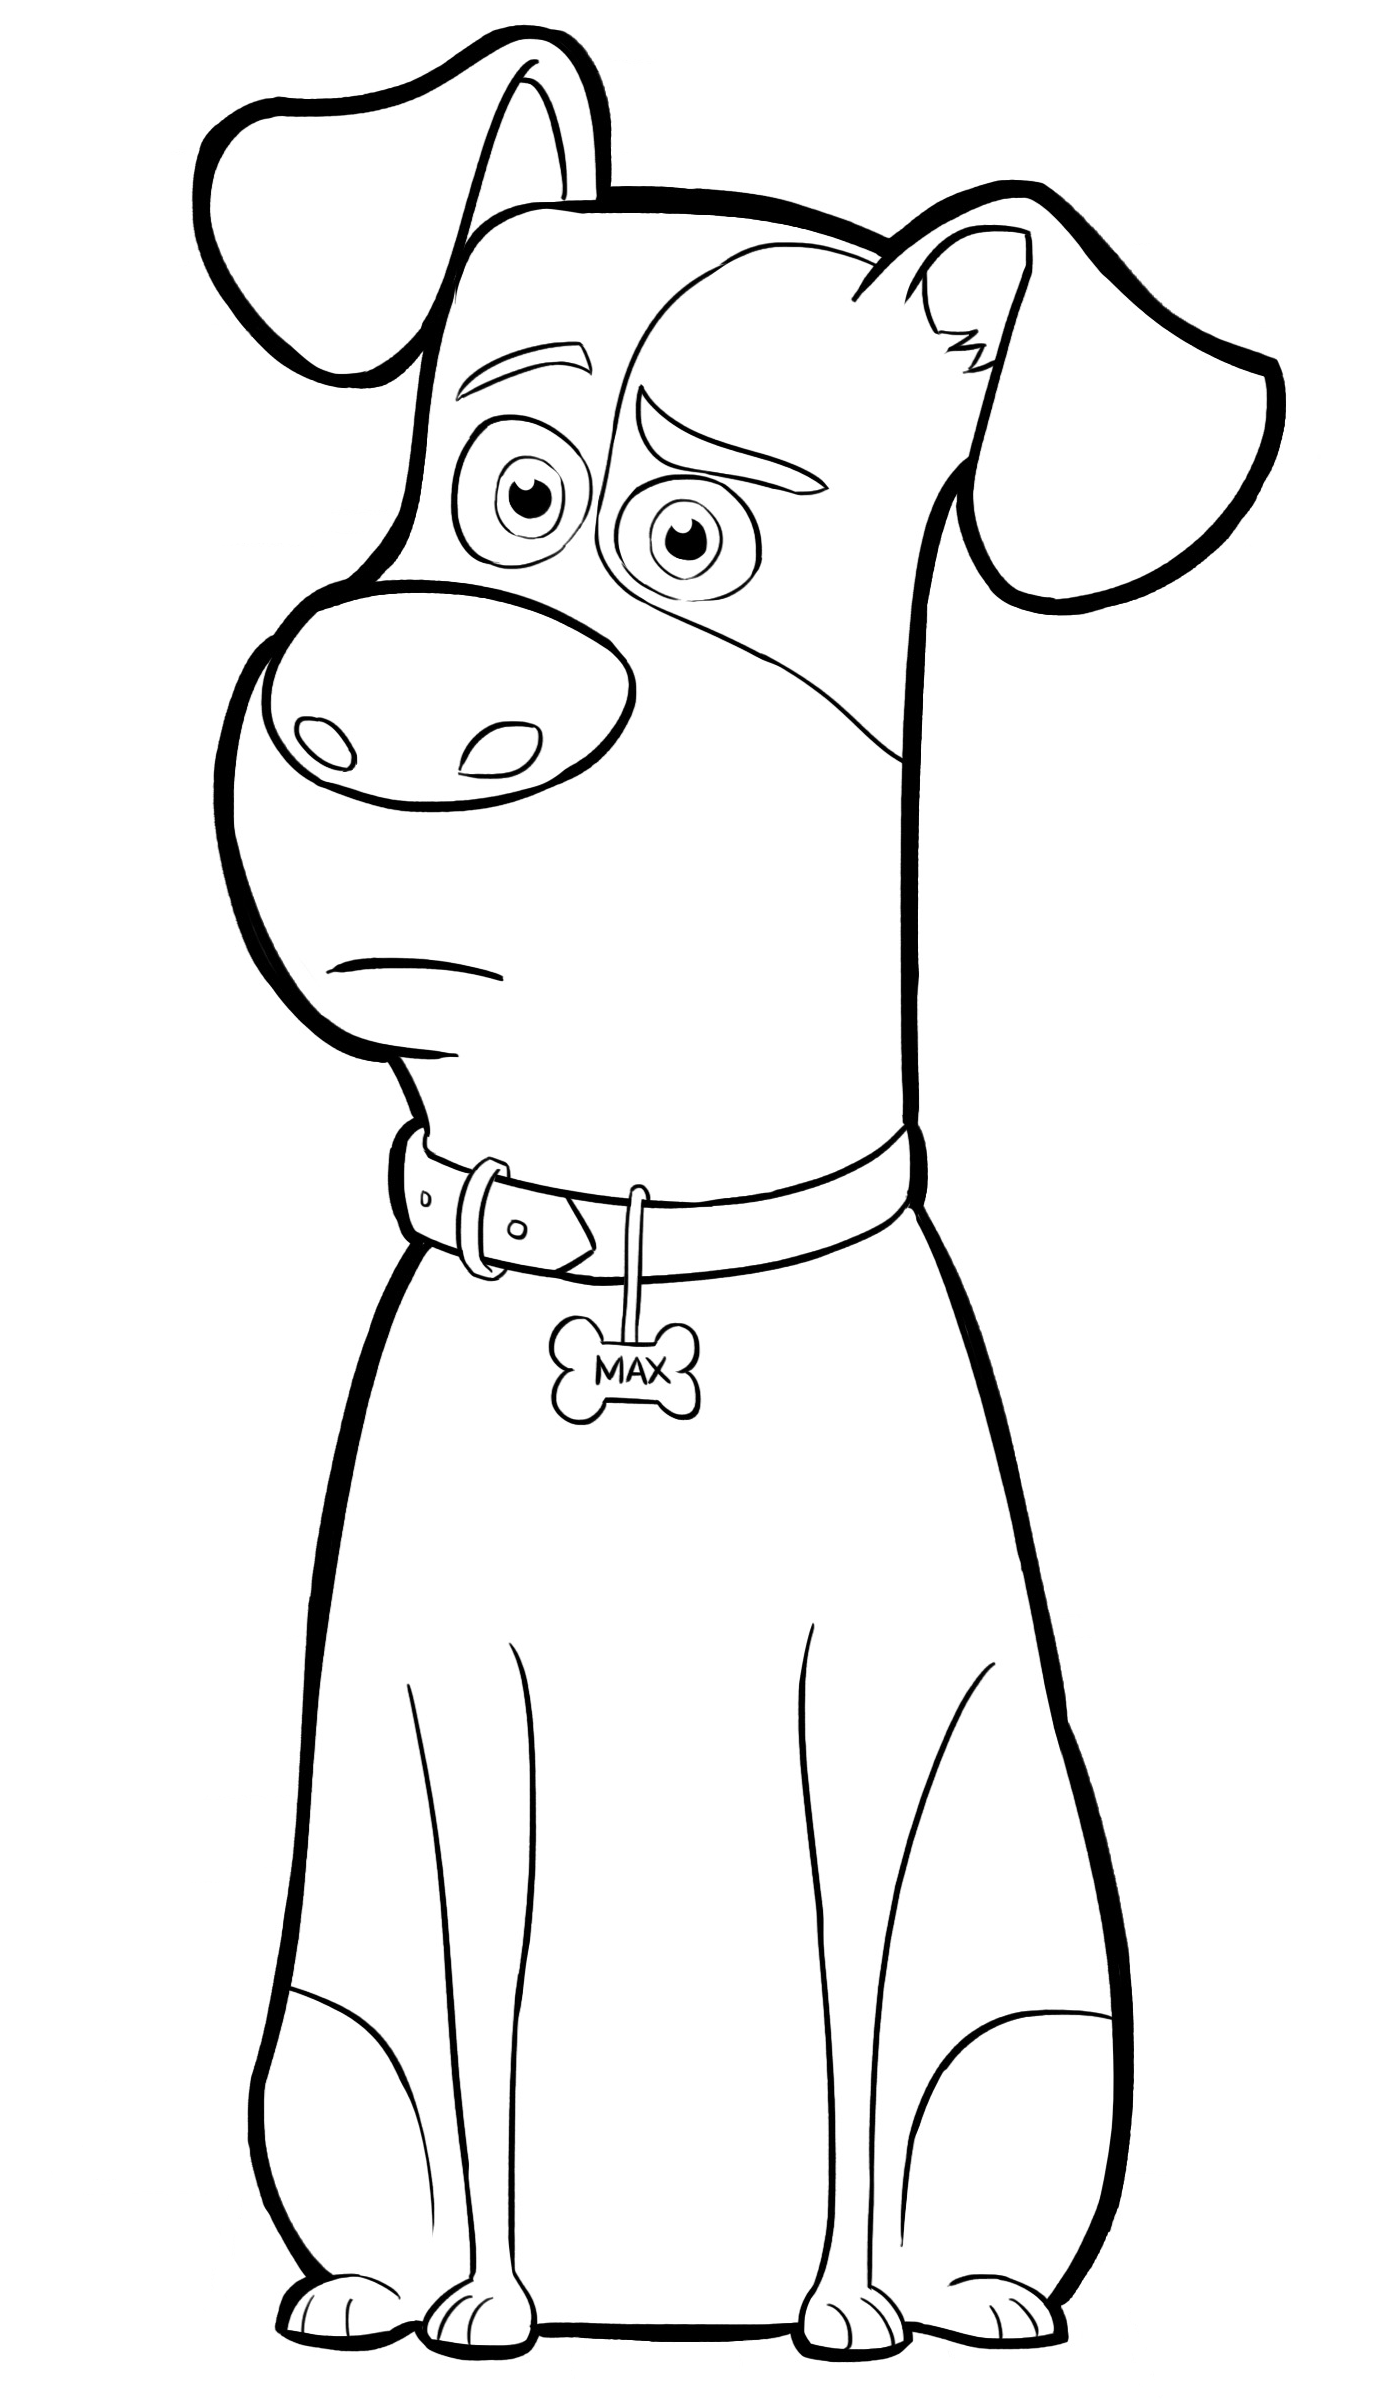 animal pictures coloring pages pets coloring pages best coloring pages for kids animal coloring pages pictures